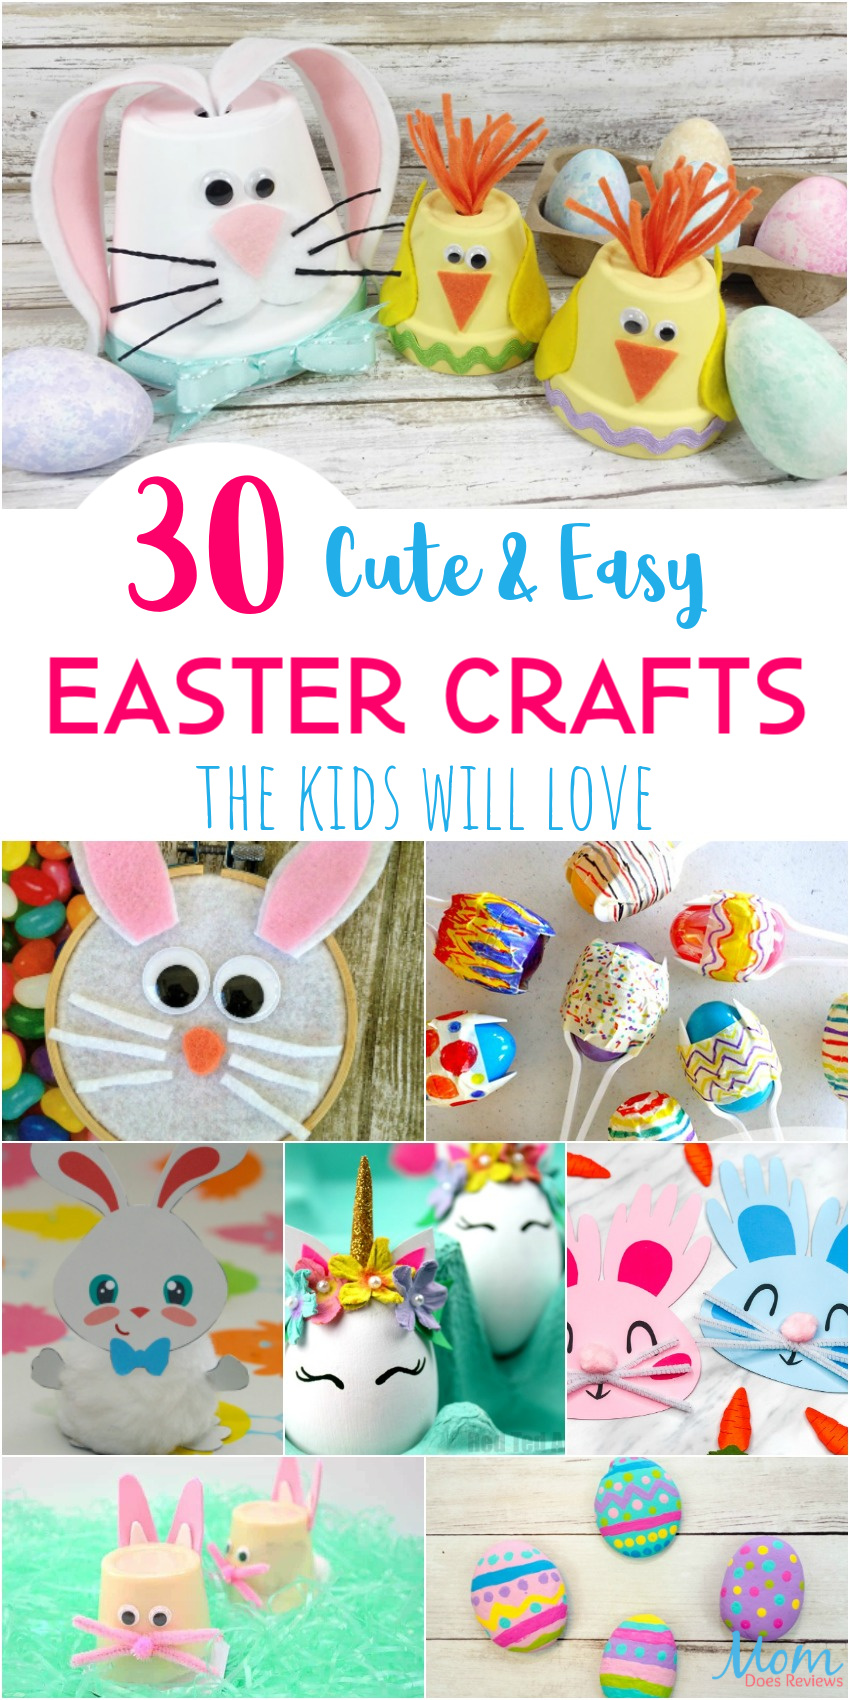 30 Cute & Easy Easter Crafts the Kids will Love #crafts #Easter #funStuff #boredombuster